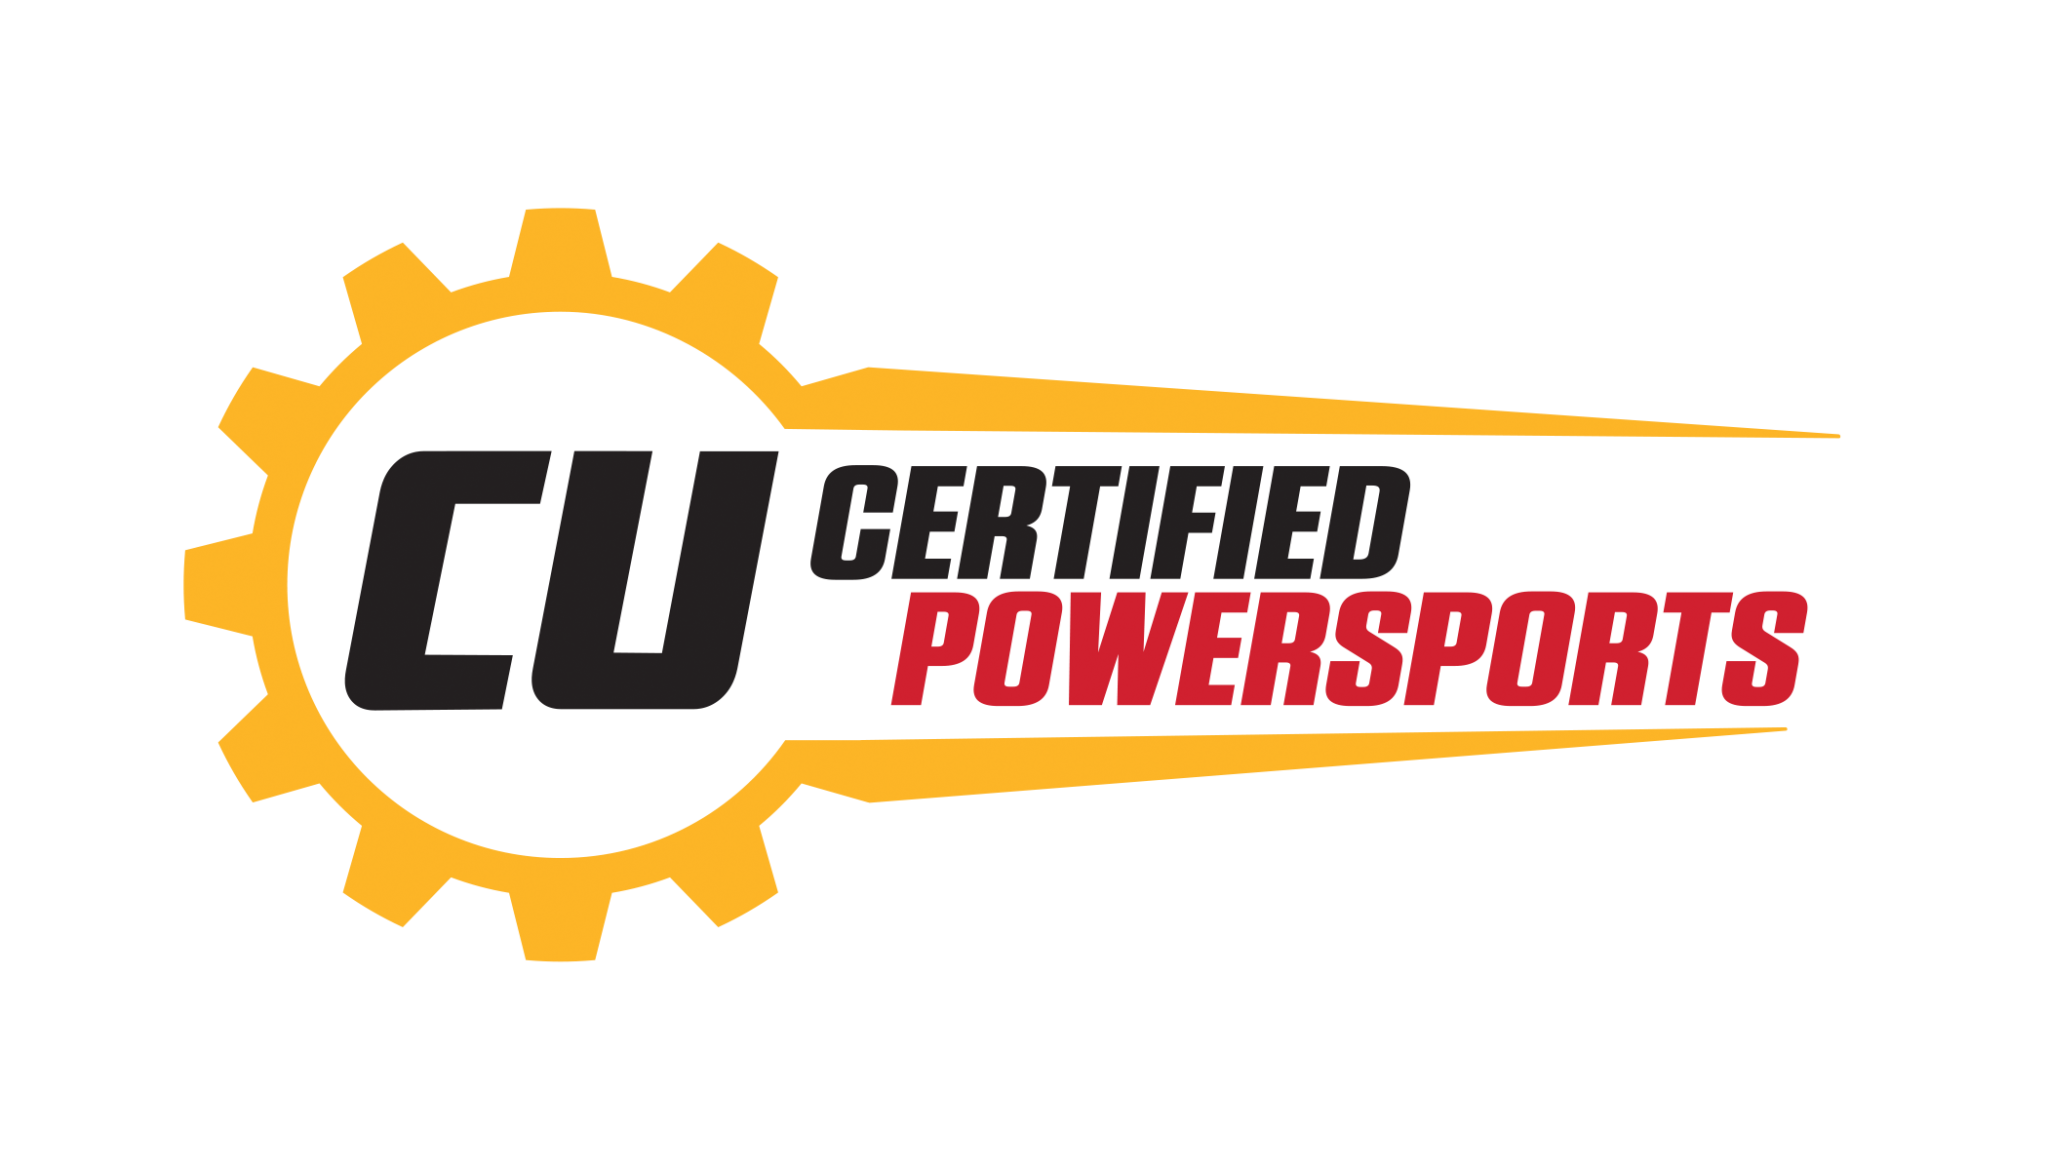 Logo Graphic for CU Certified Powersports Extended Service Agreement